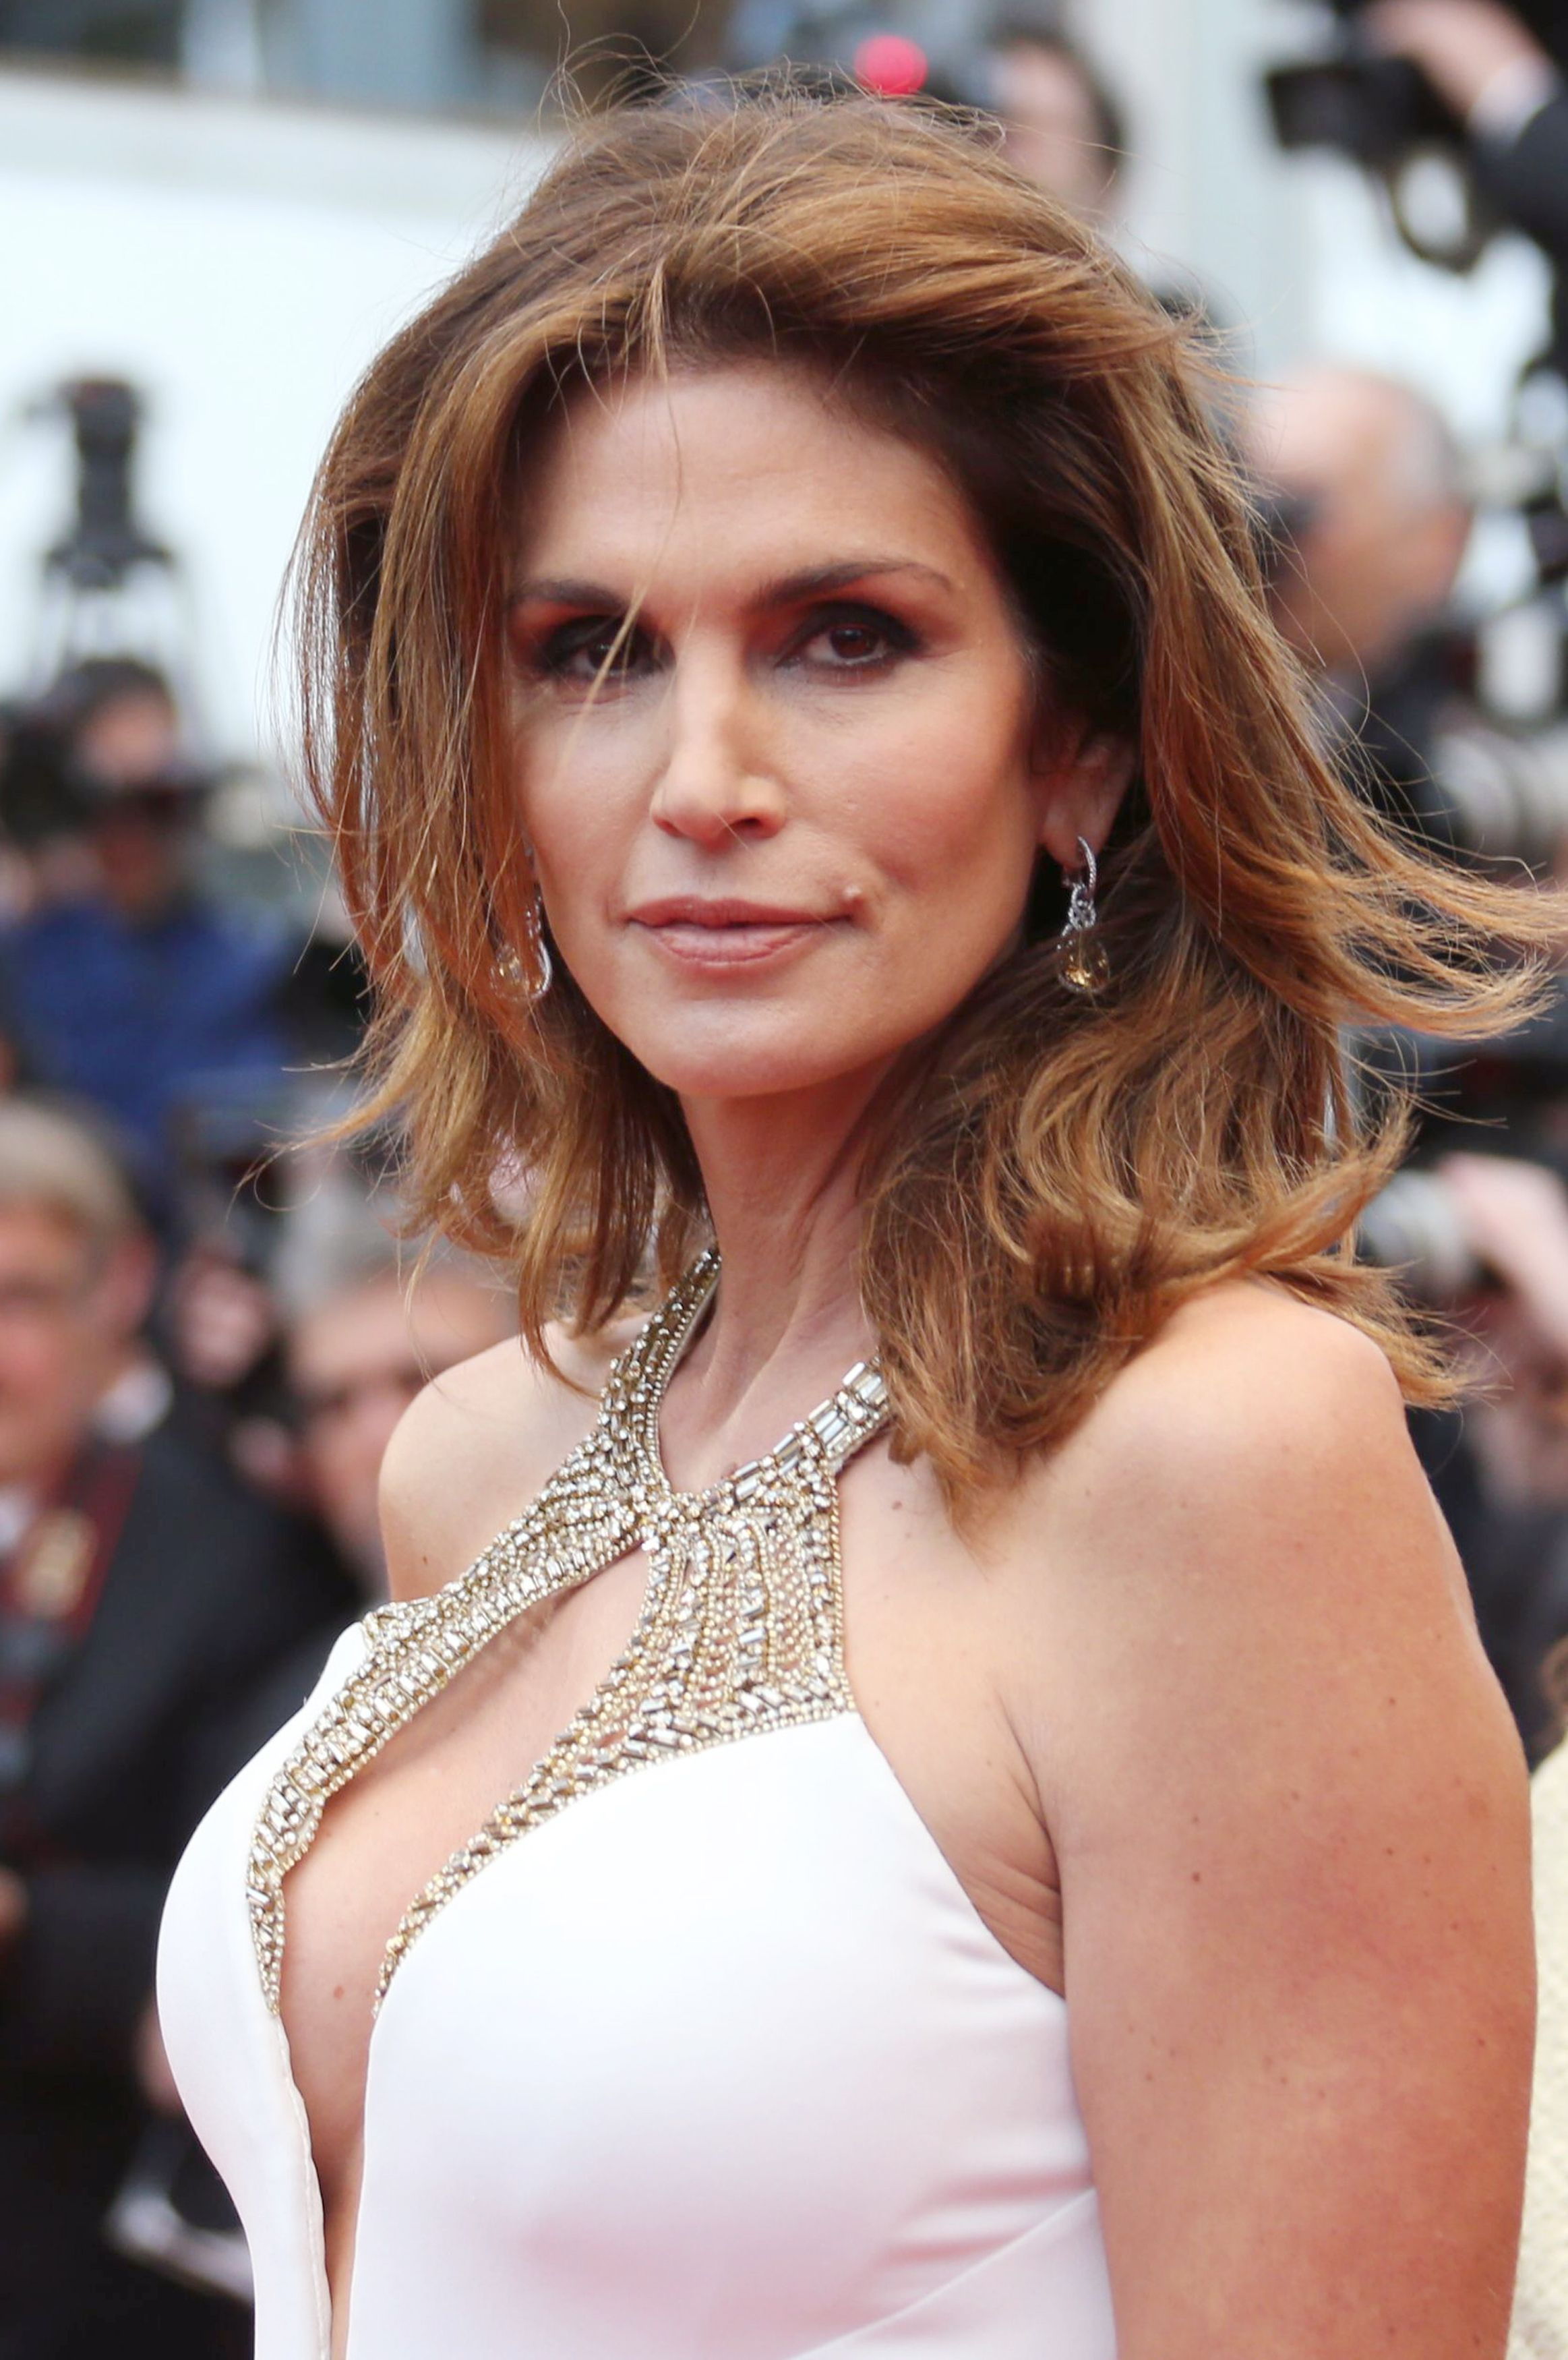 Cindy Crawford plastic surgery before and after botox, facelift photos 1